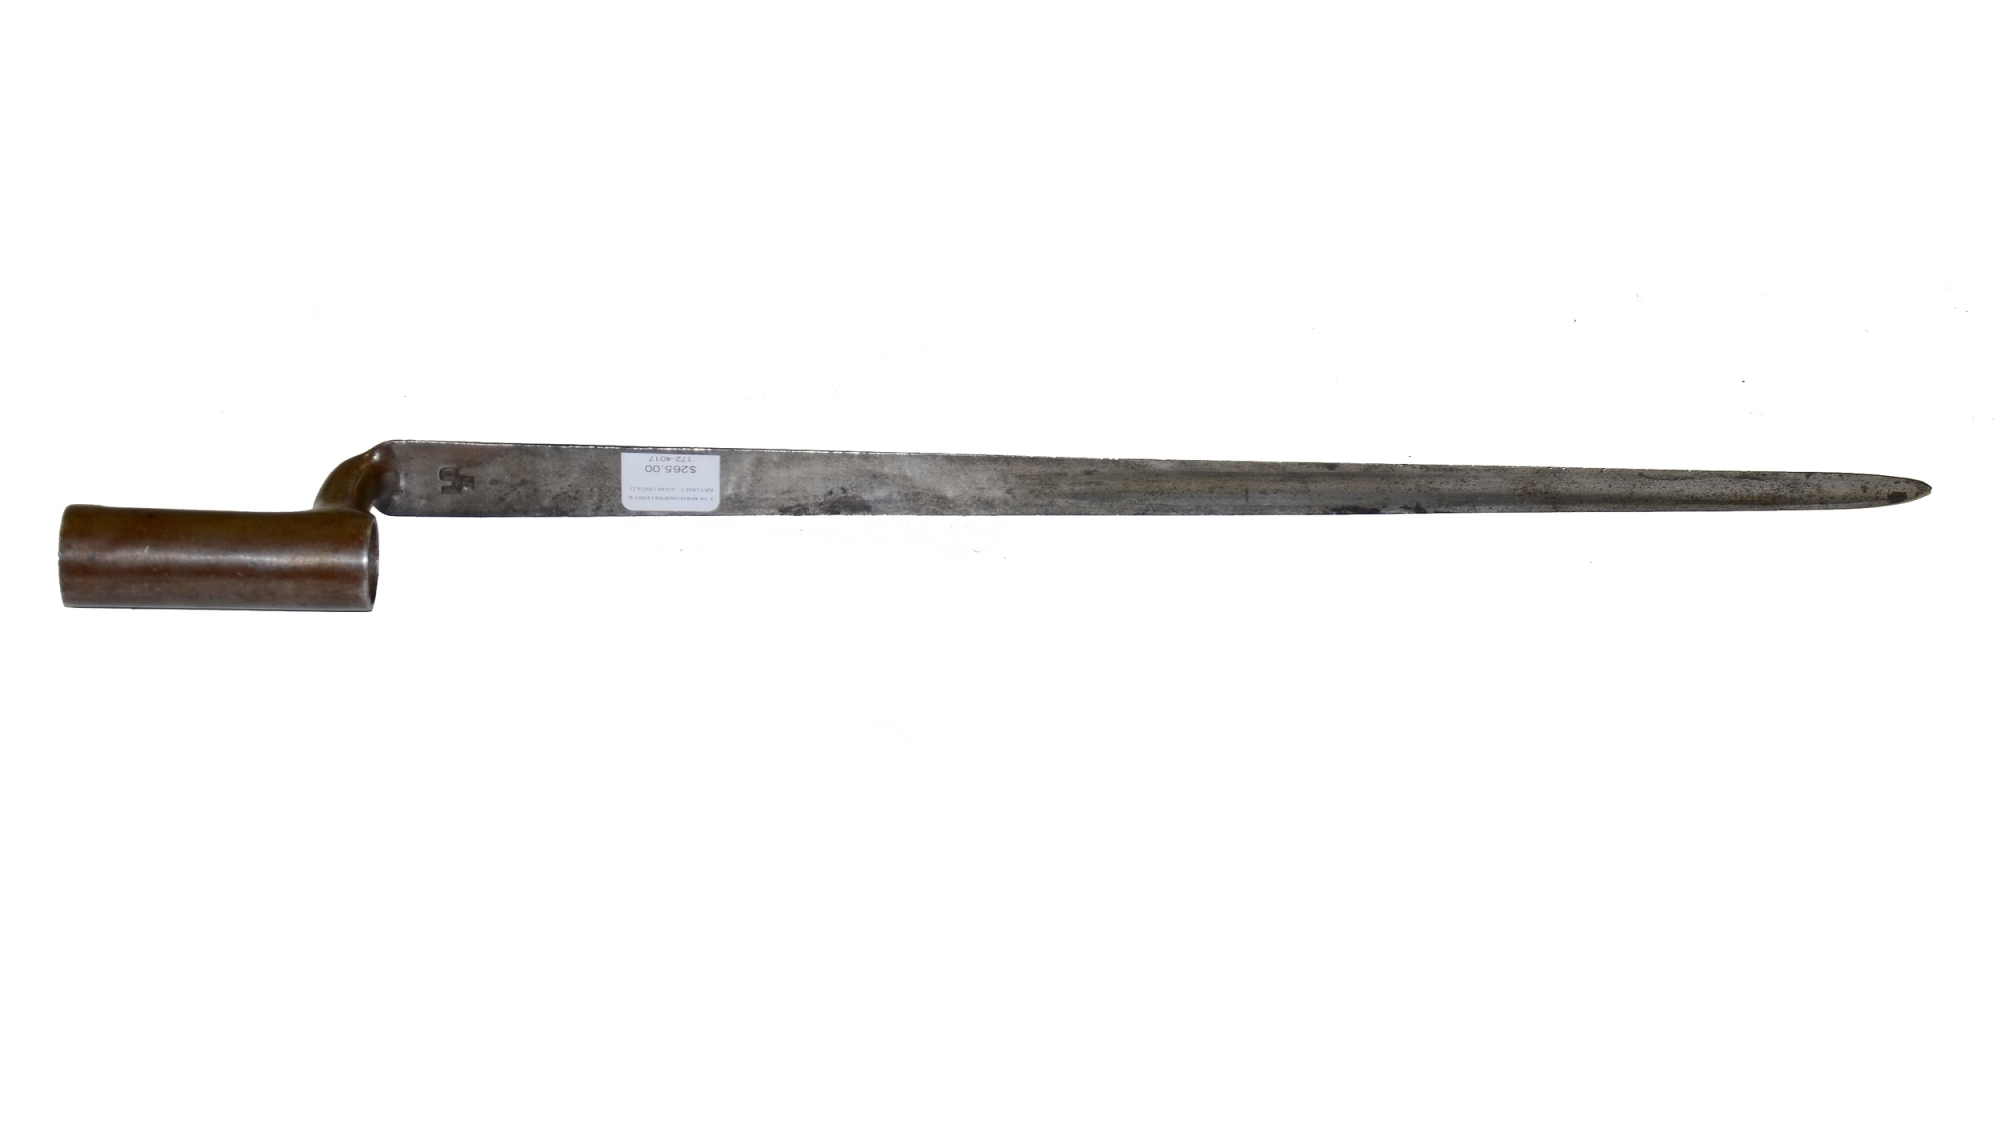 US MODEL 1816 SOCKET BAYONET MADE AT HARPER'S FERRY